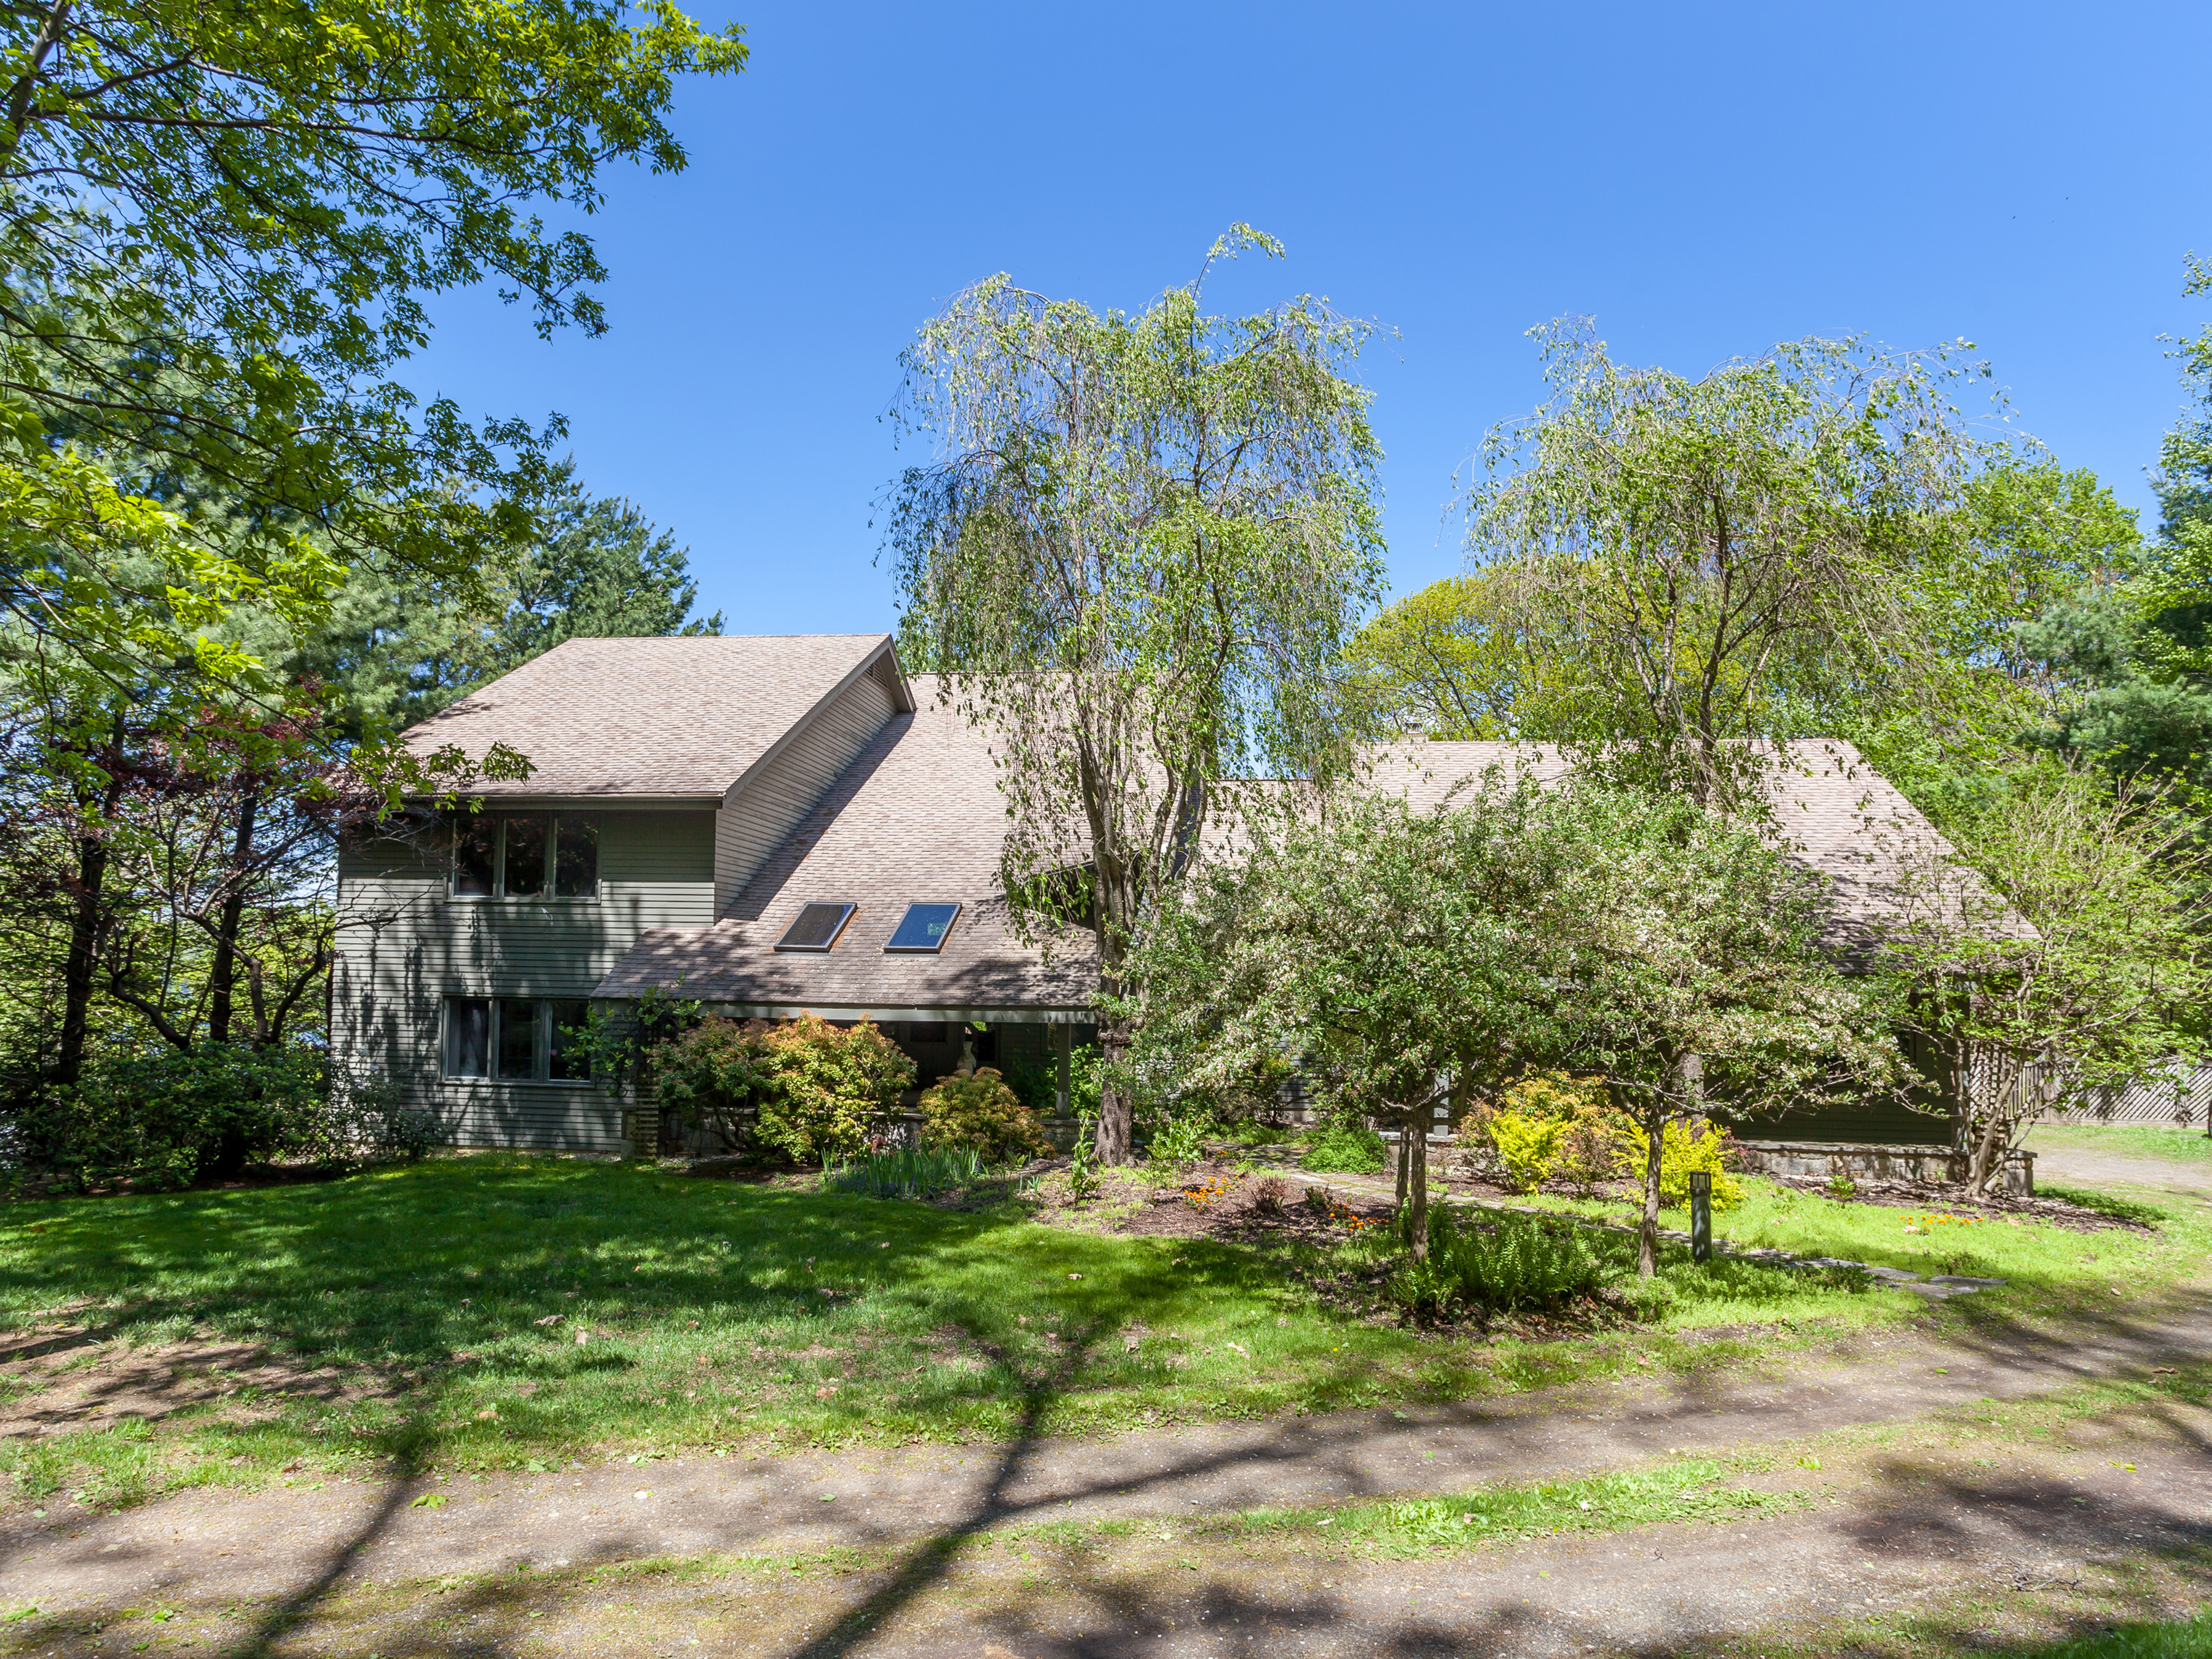 Single Family Home for Sale at Direct Waterfront Candlewood Lake 41 Sail Harbour Drive New Fairfield, Connecticut, 06812 United States